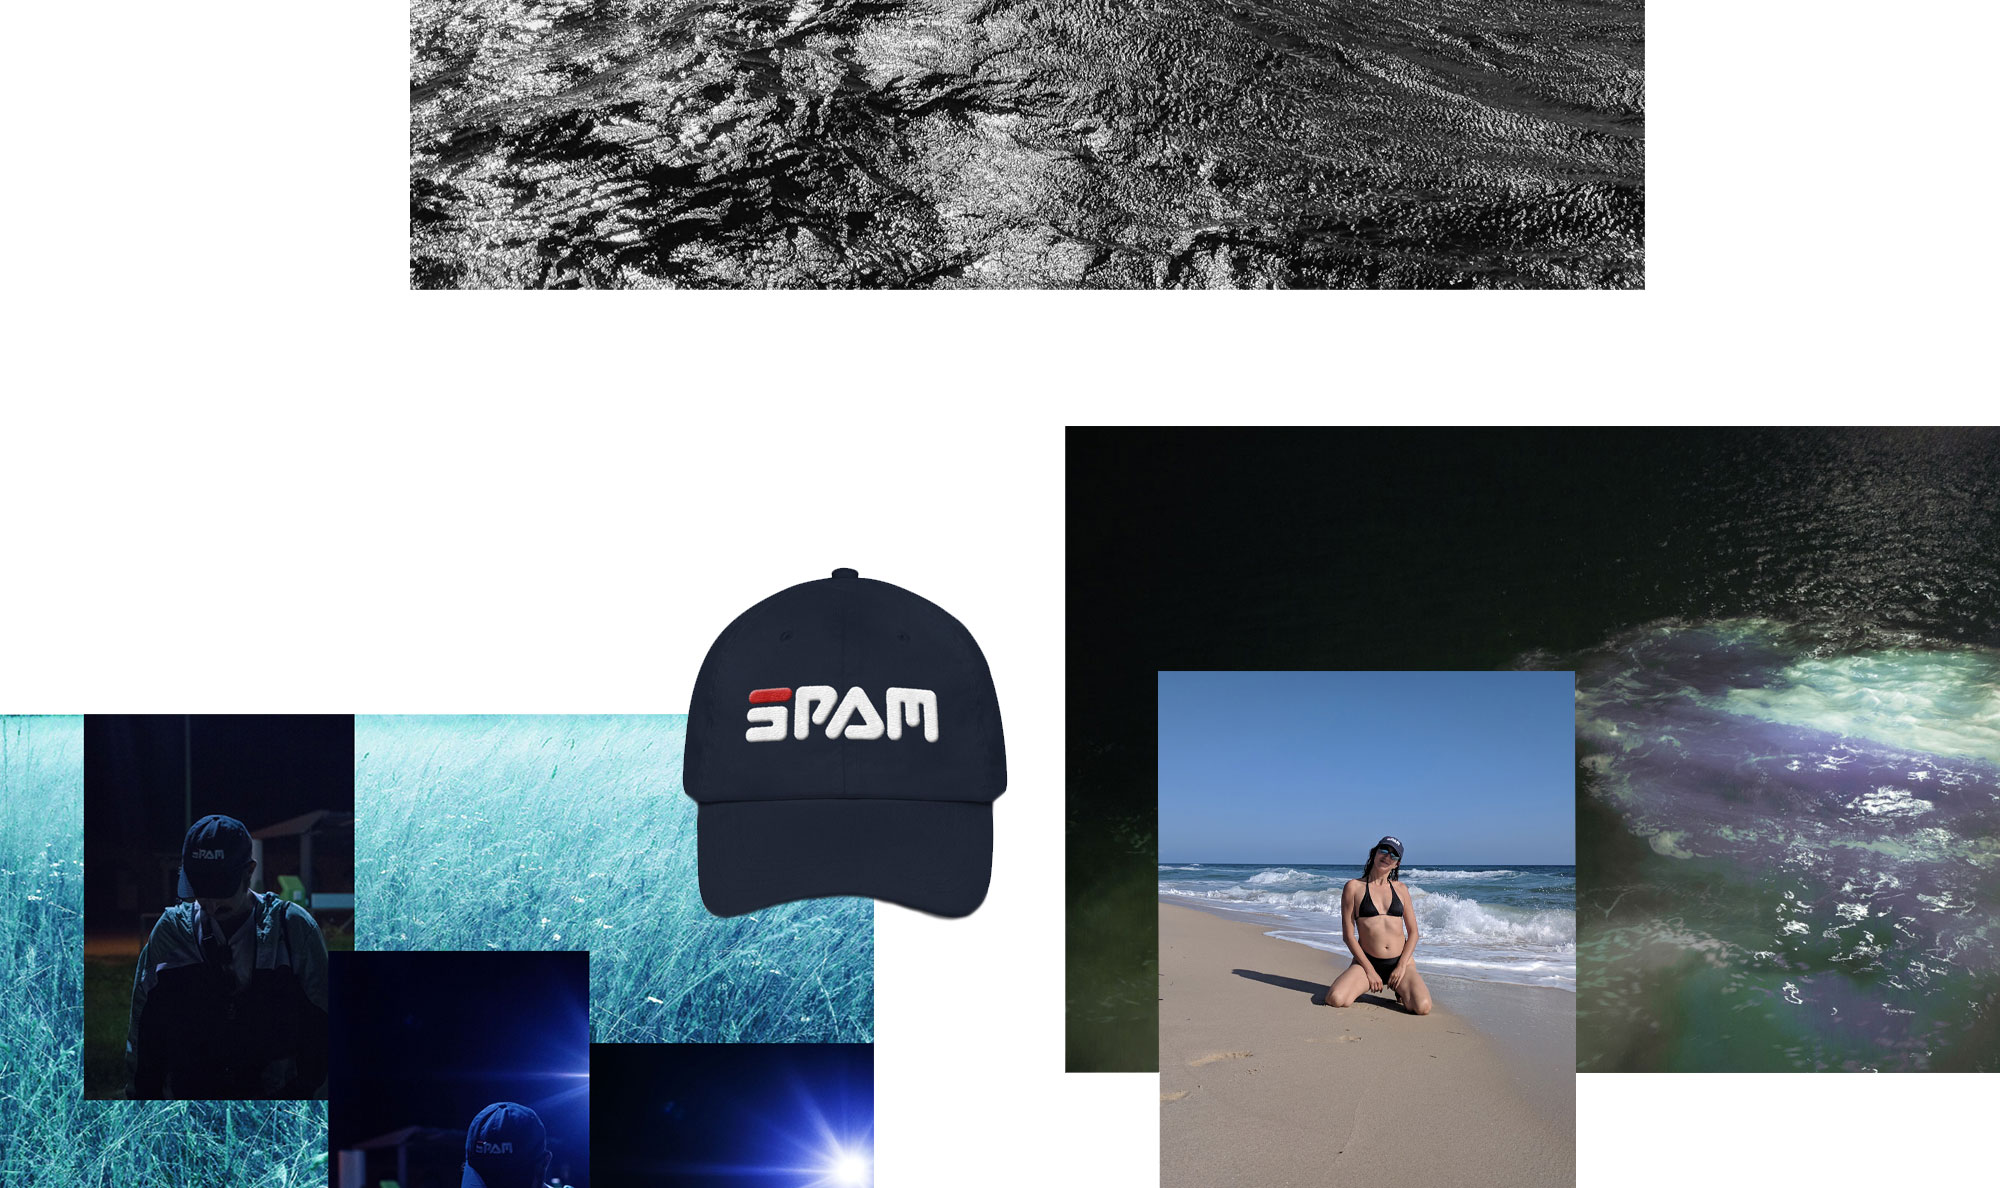 Original Spam Cap on beach